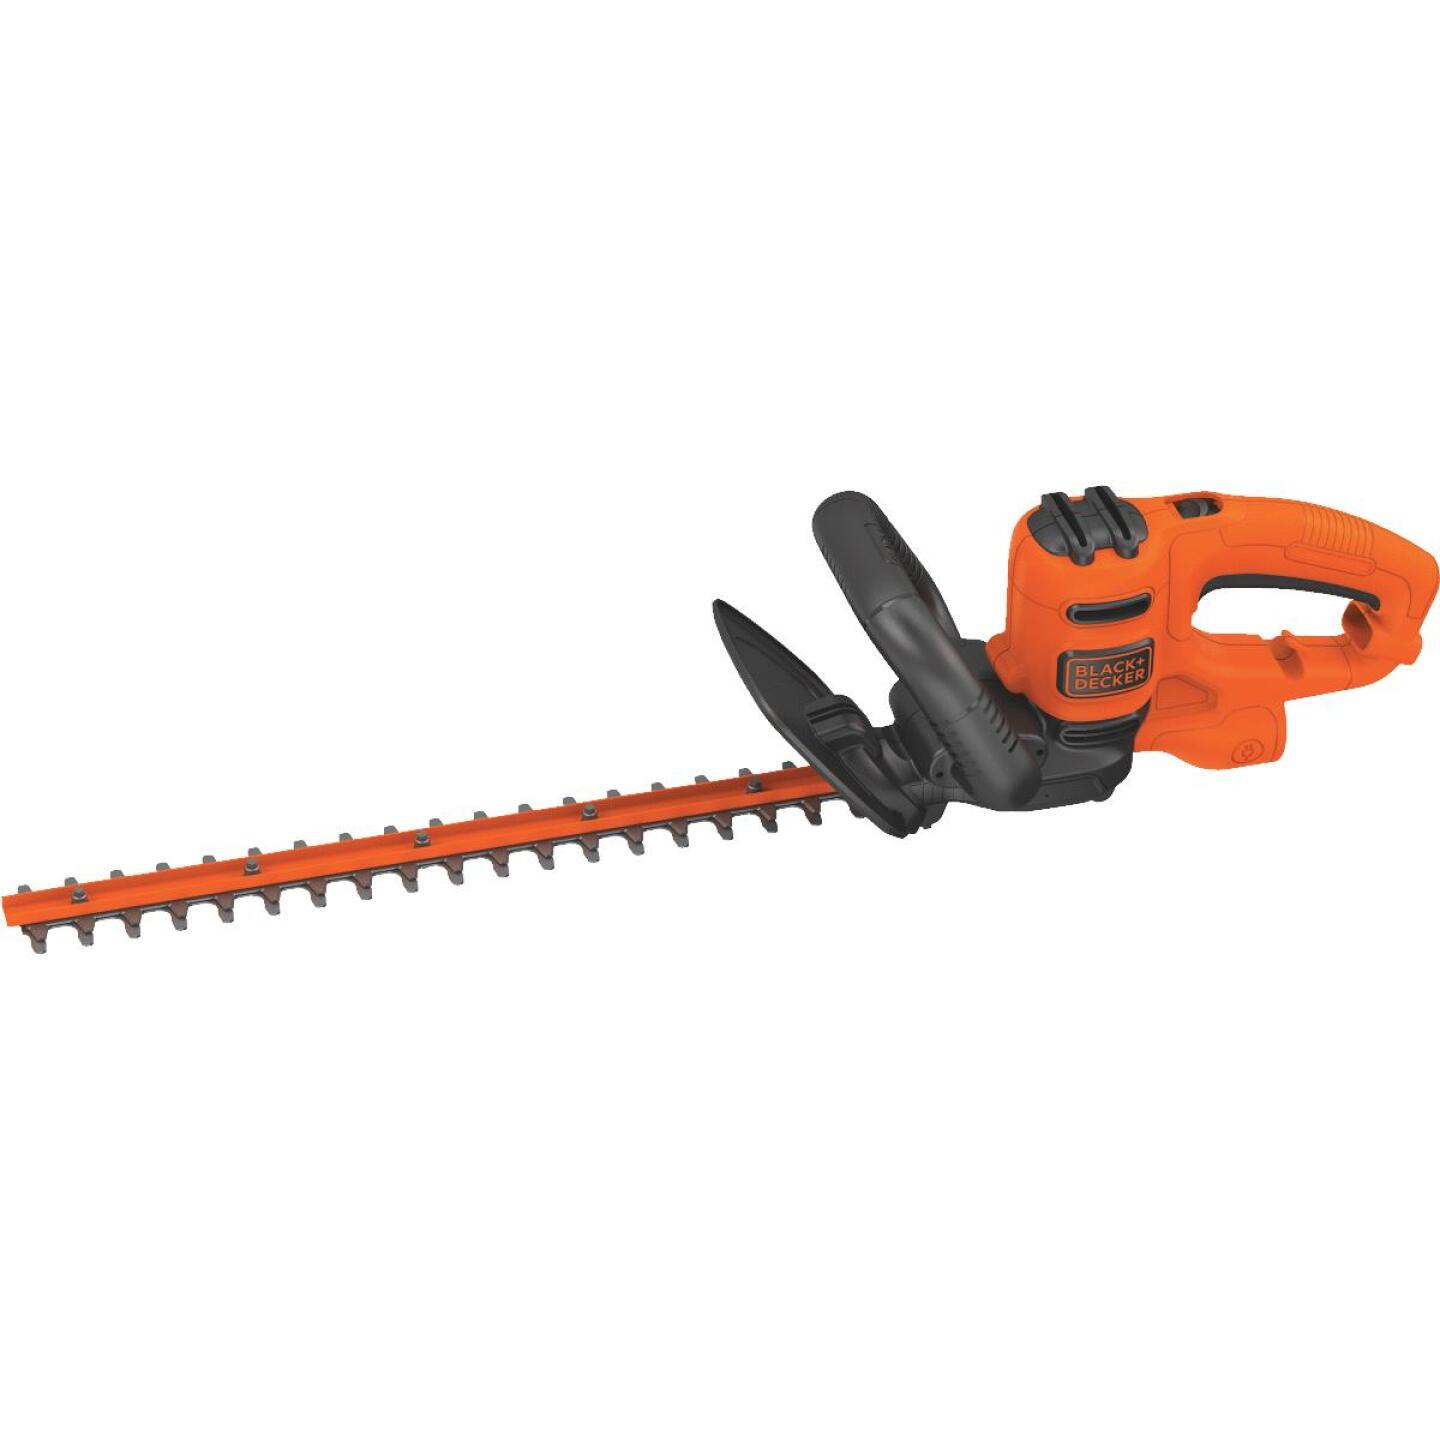 Black & Decker 18 In. 3.5-Amp Corded Electric Hedge Trimmer Image 1